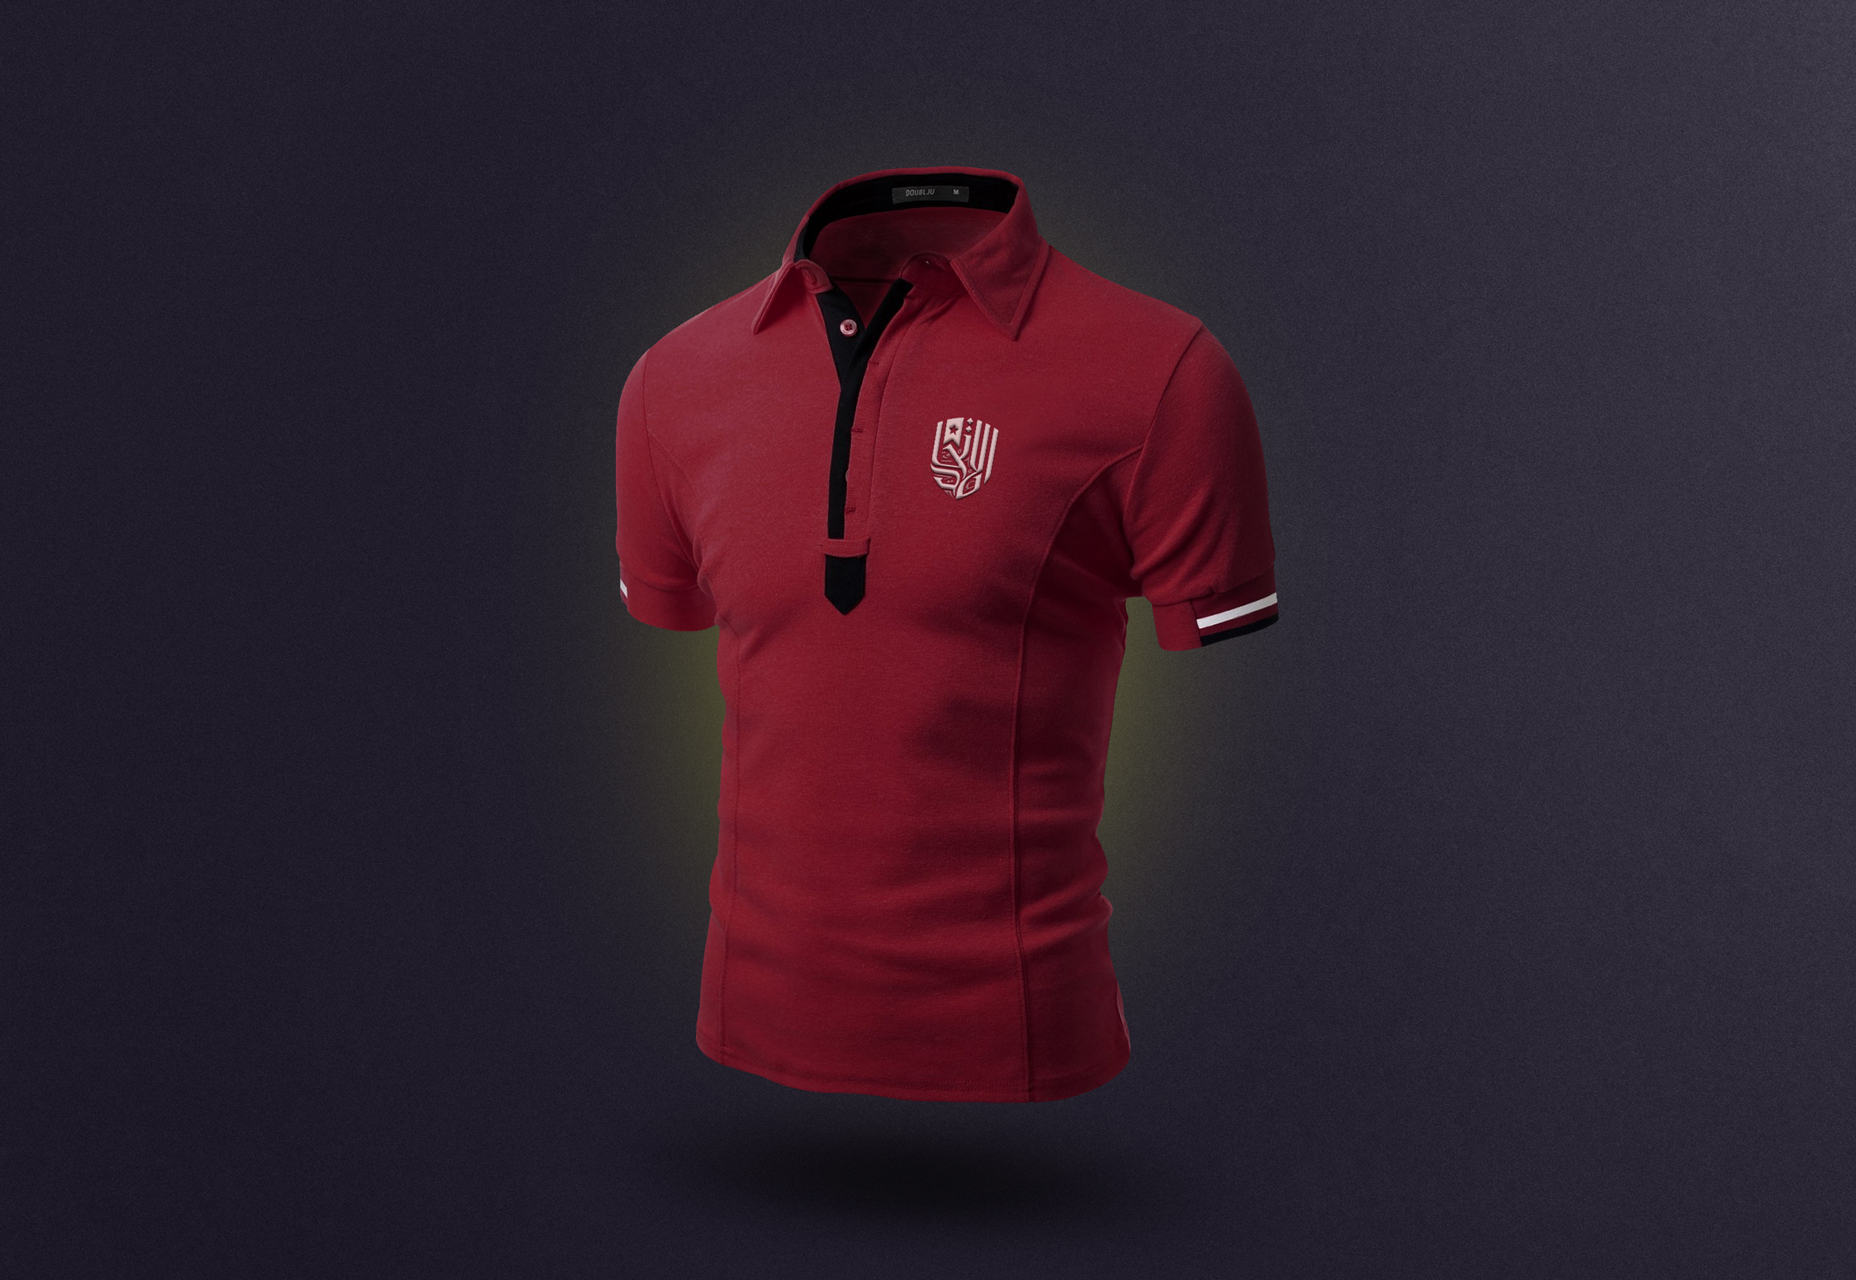 3 Polo T-shirt PSD Mockups Set